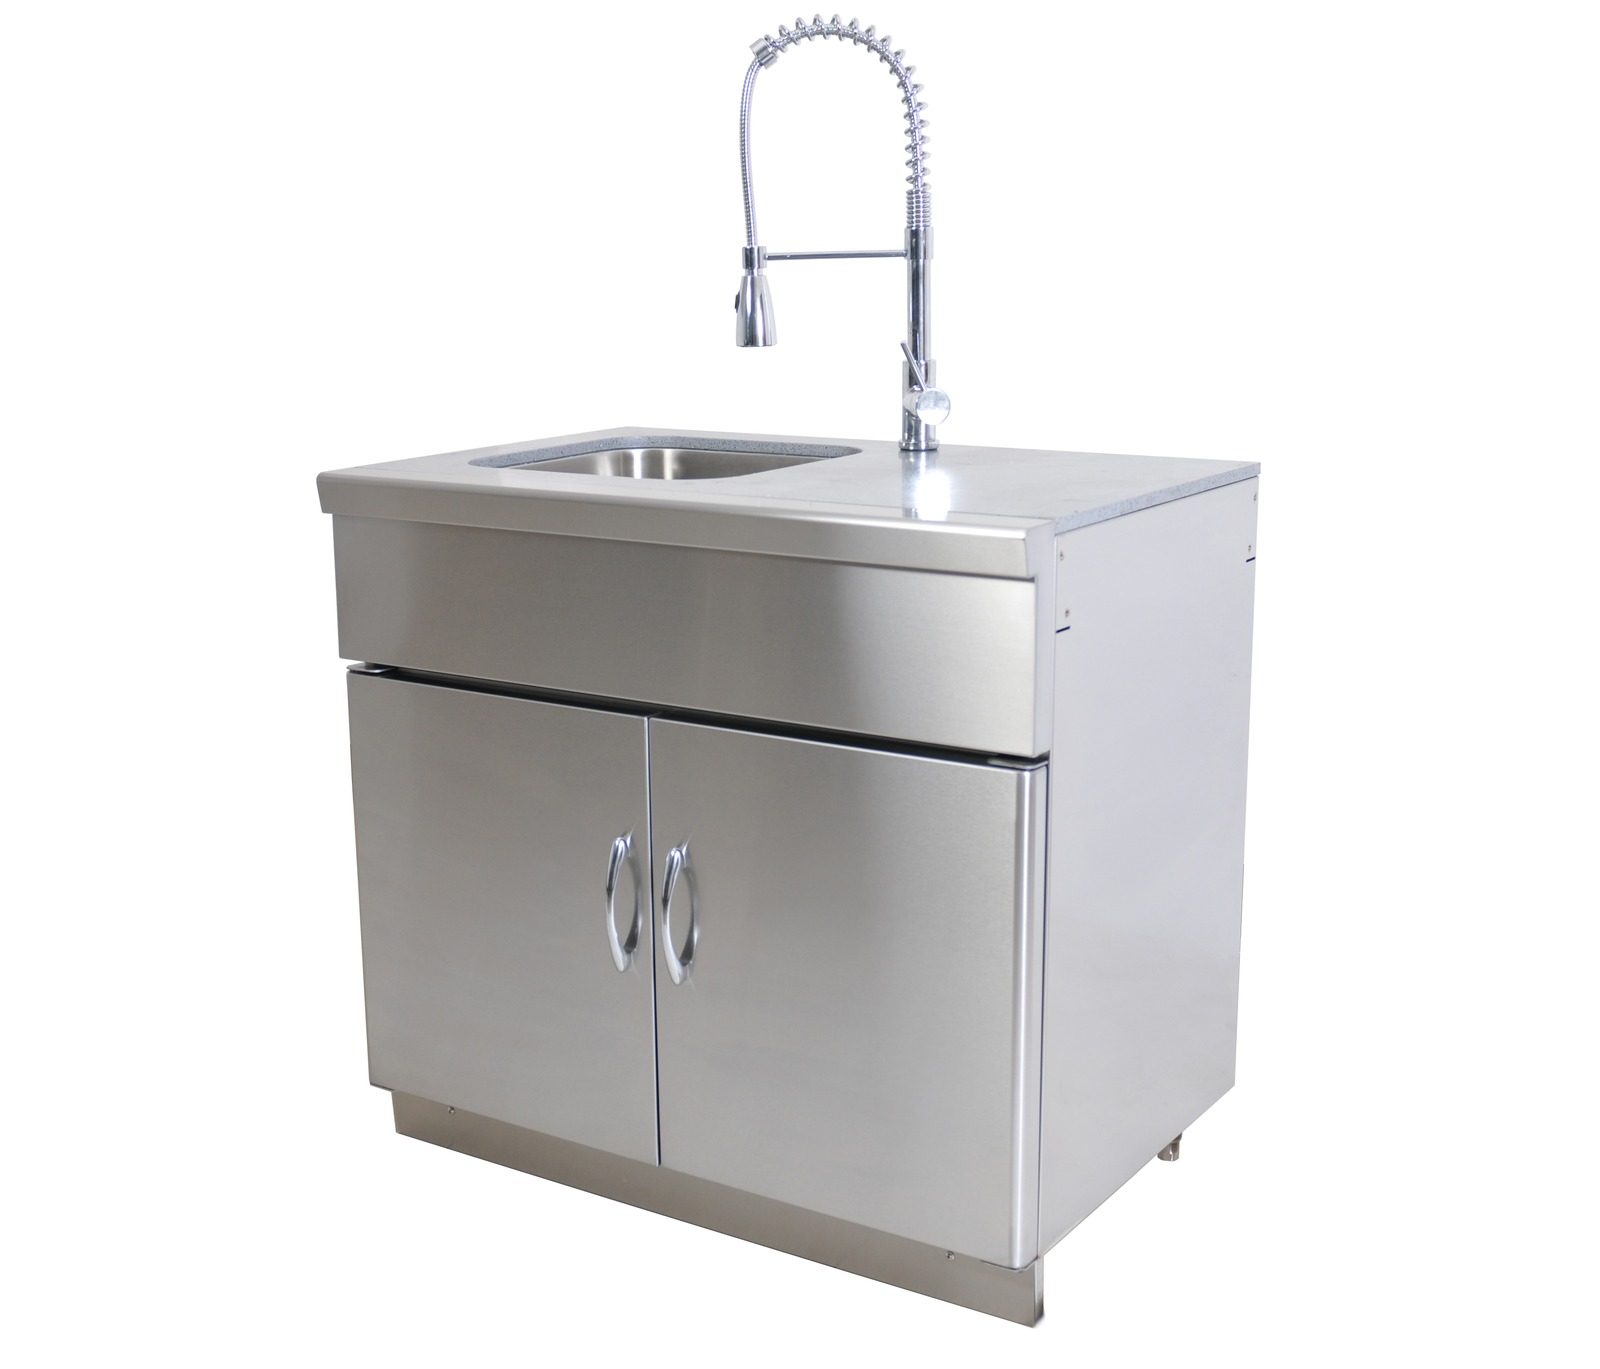 outdoor kitchen sink unit grandfire